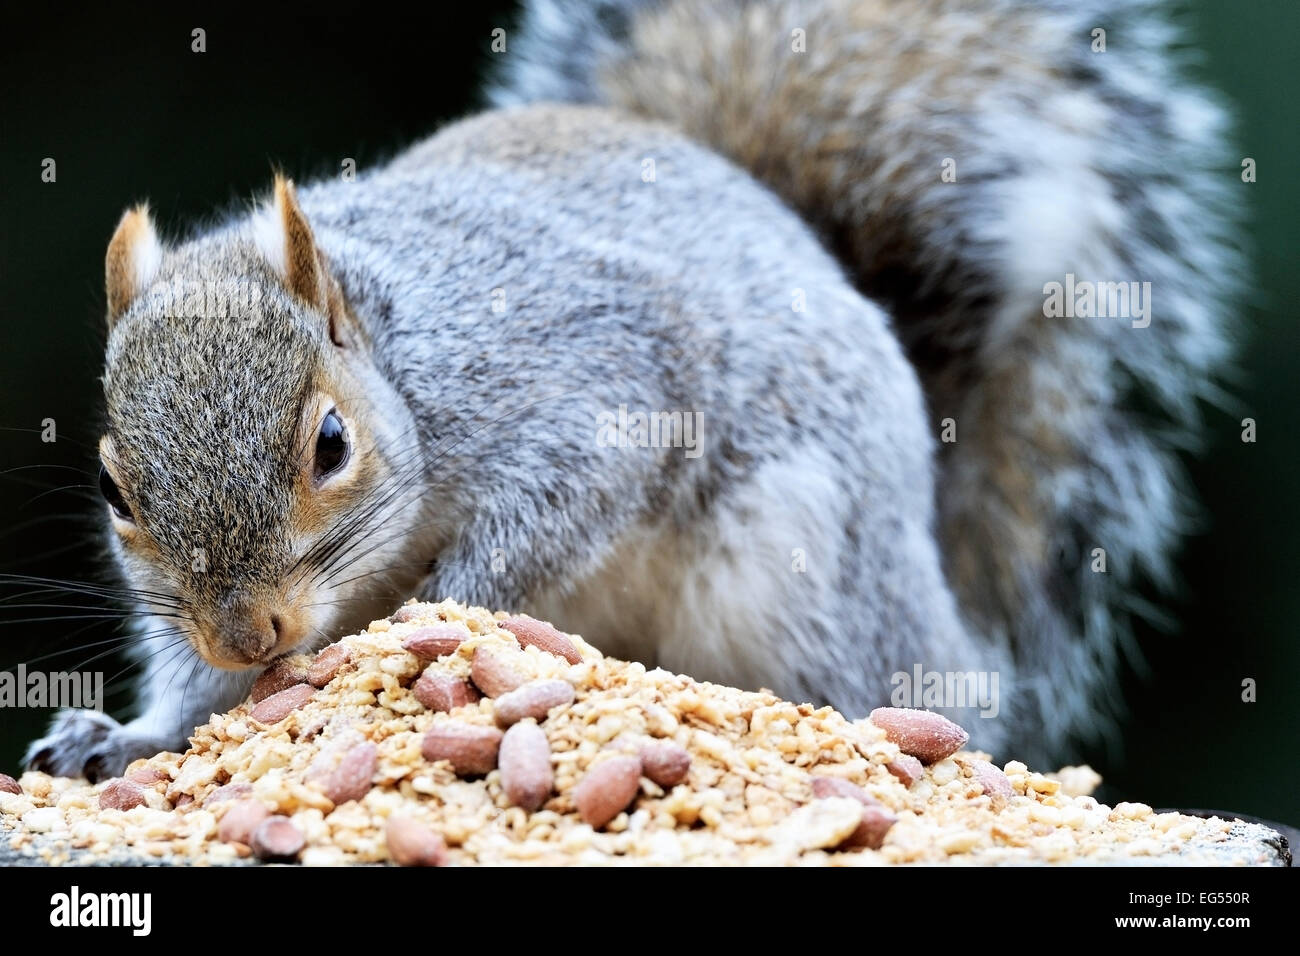 grey-gray-squirrel-sciurus-carolinensis-